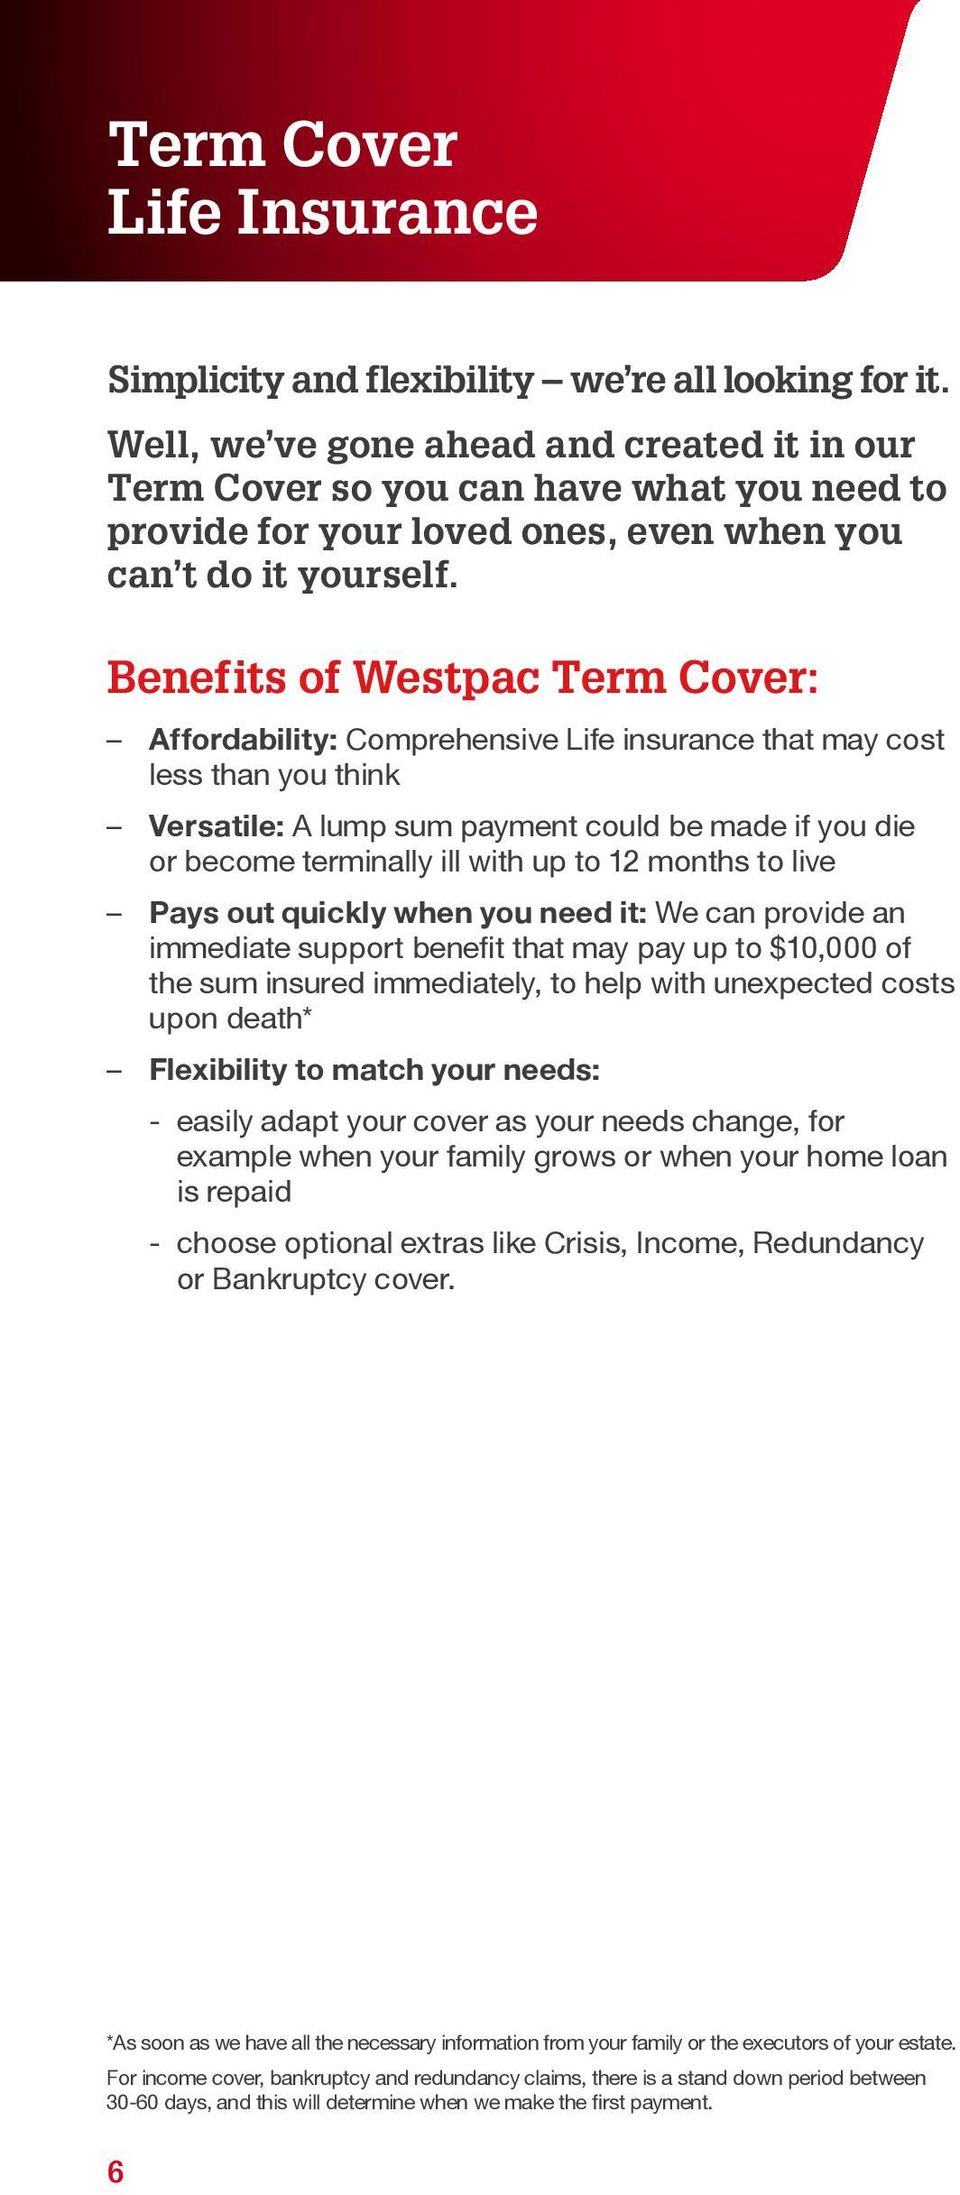 Benefits of Westpac Term Cover: Affordability: Comprehensive Life insurance that may cost less than you think Versatile: A lump sum payment could be made if you die or become terminally ill with up